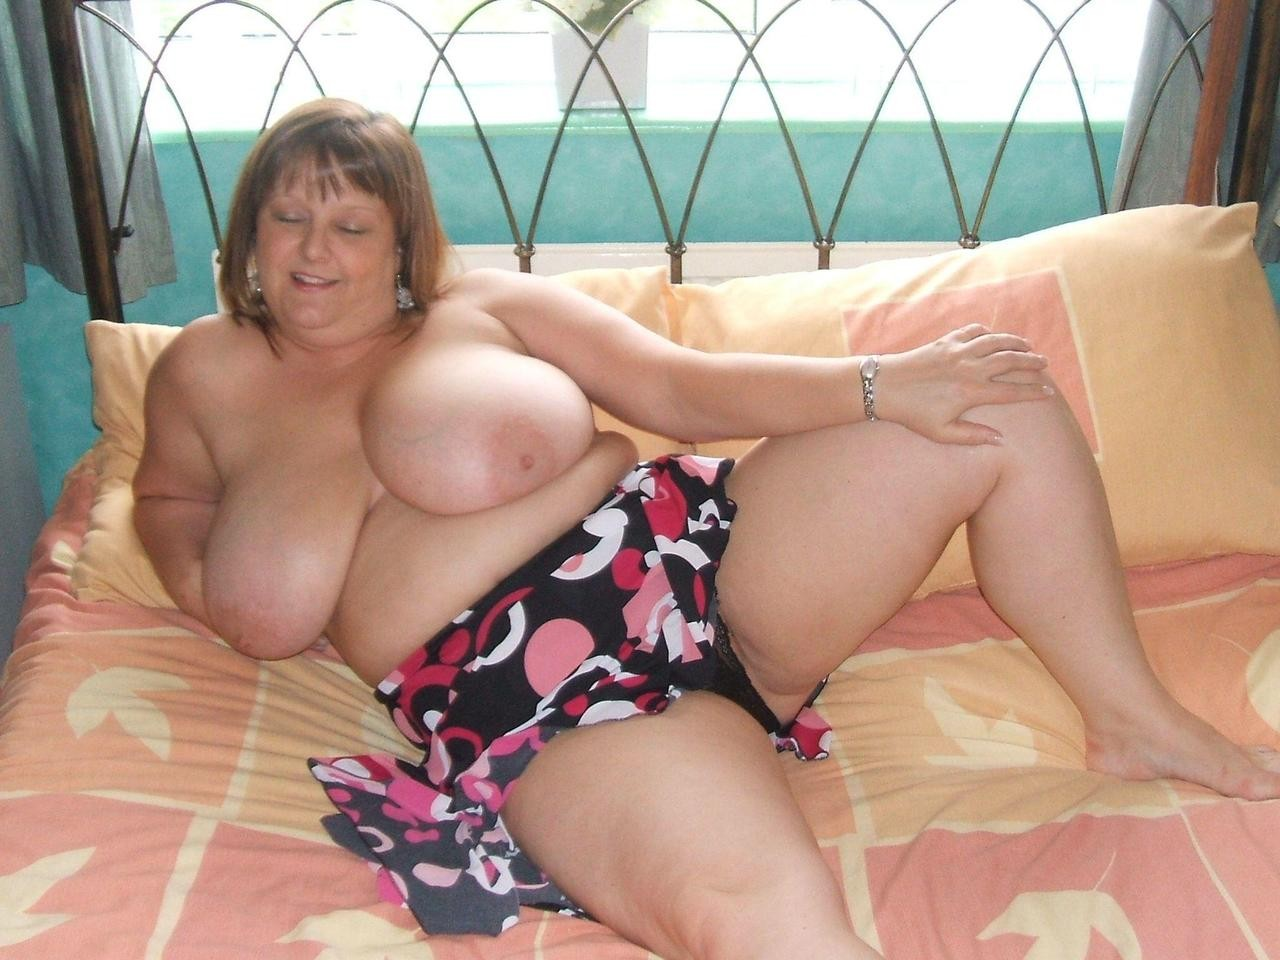 Bbw Granny With Big Juggs Posing All Over